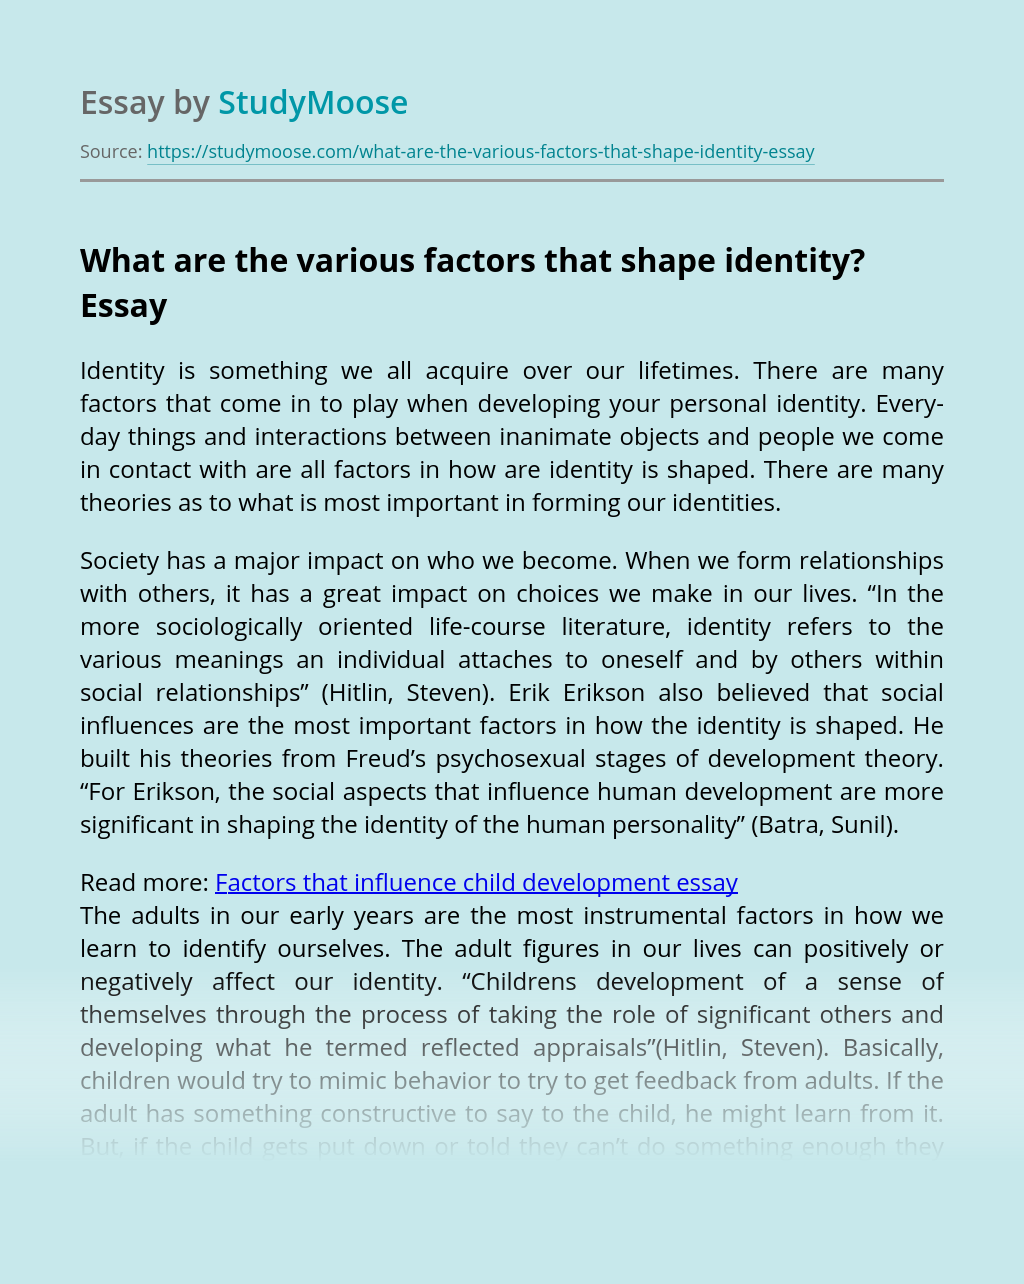 What are the various factors that shape identity?